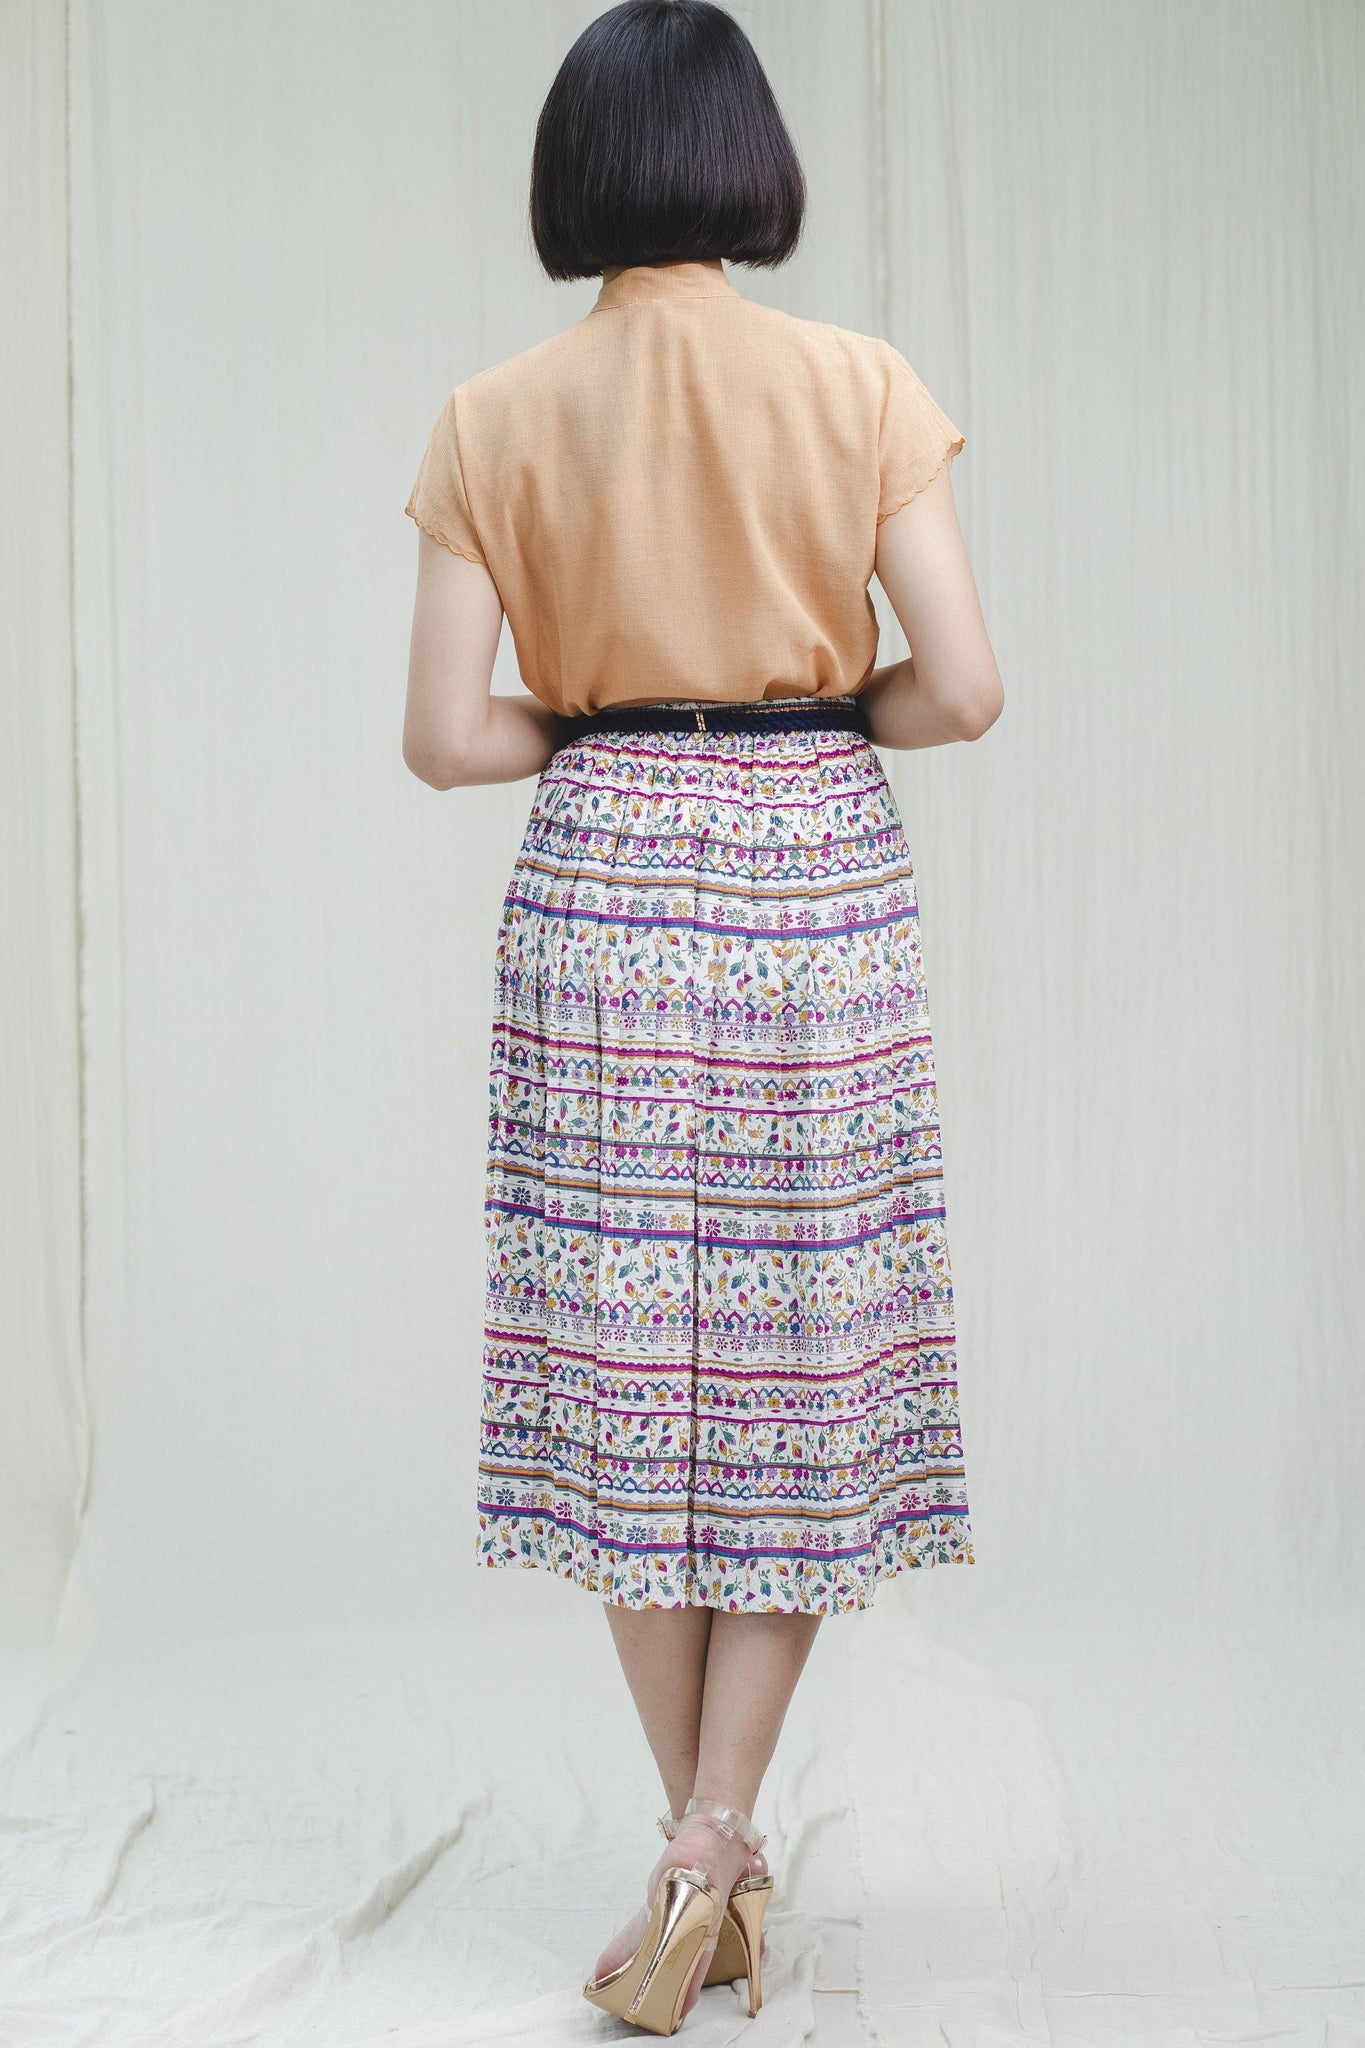 Skirt l Colorful cotton vintage skirt - Sugar & Cream Vintage